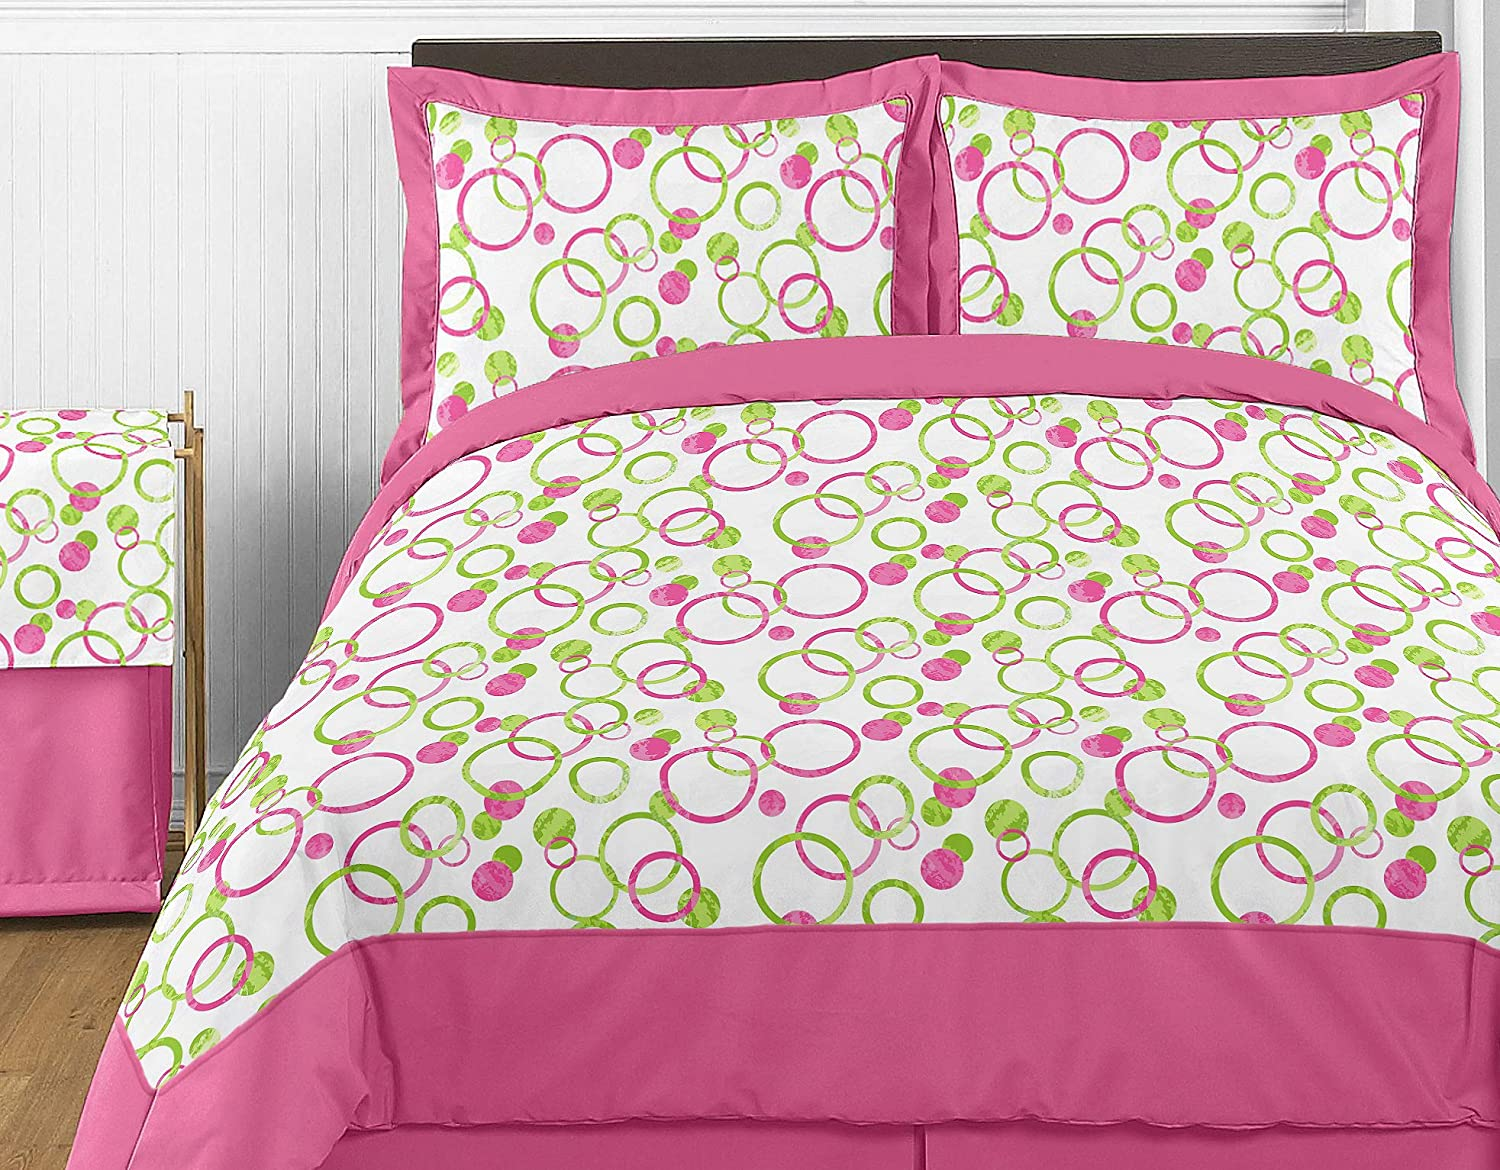 Sweet Jojo Designs Modern Pink and Green Circles Polka Dots Childrens and Teen 3 Piece Full/Queen Girl Bedding Set